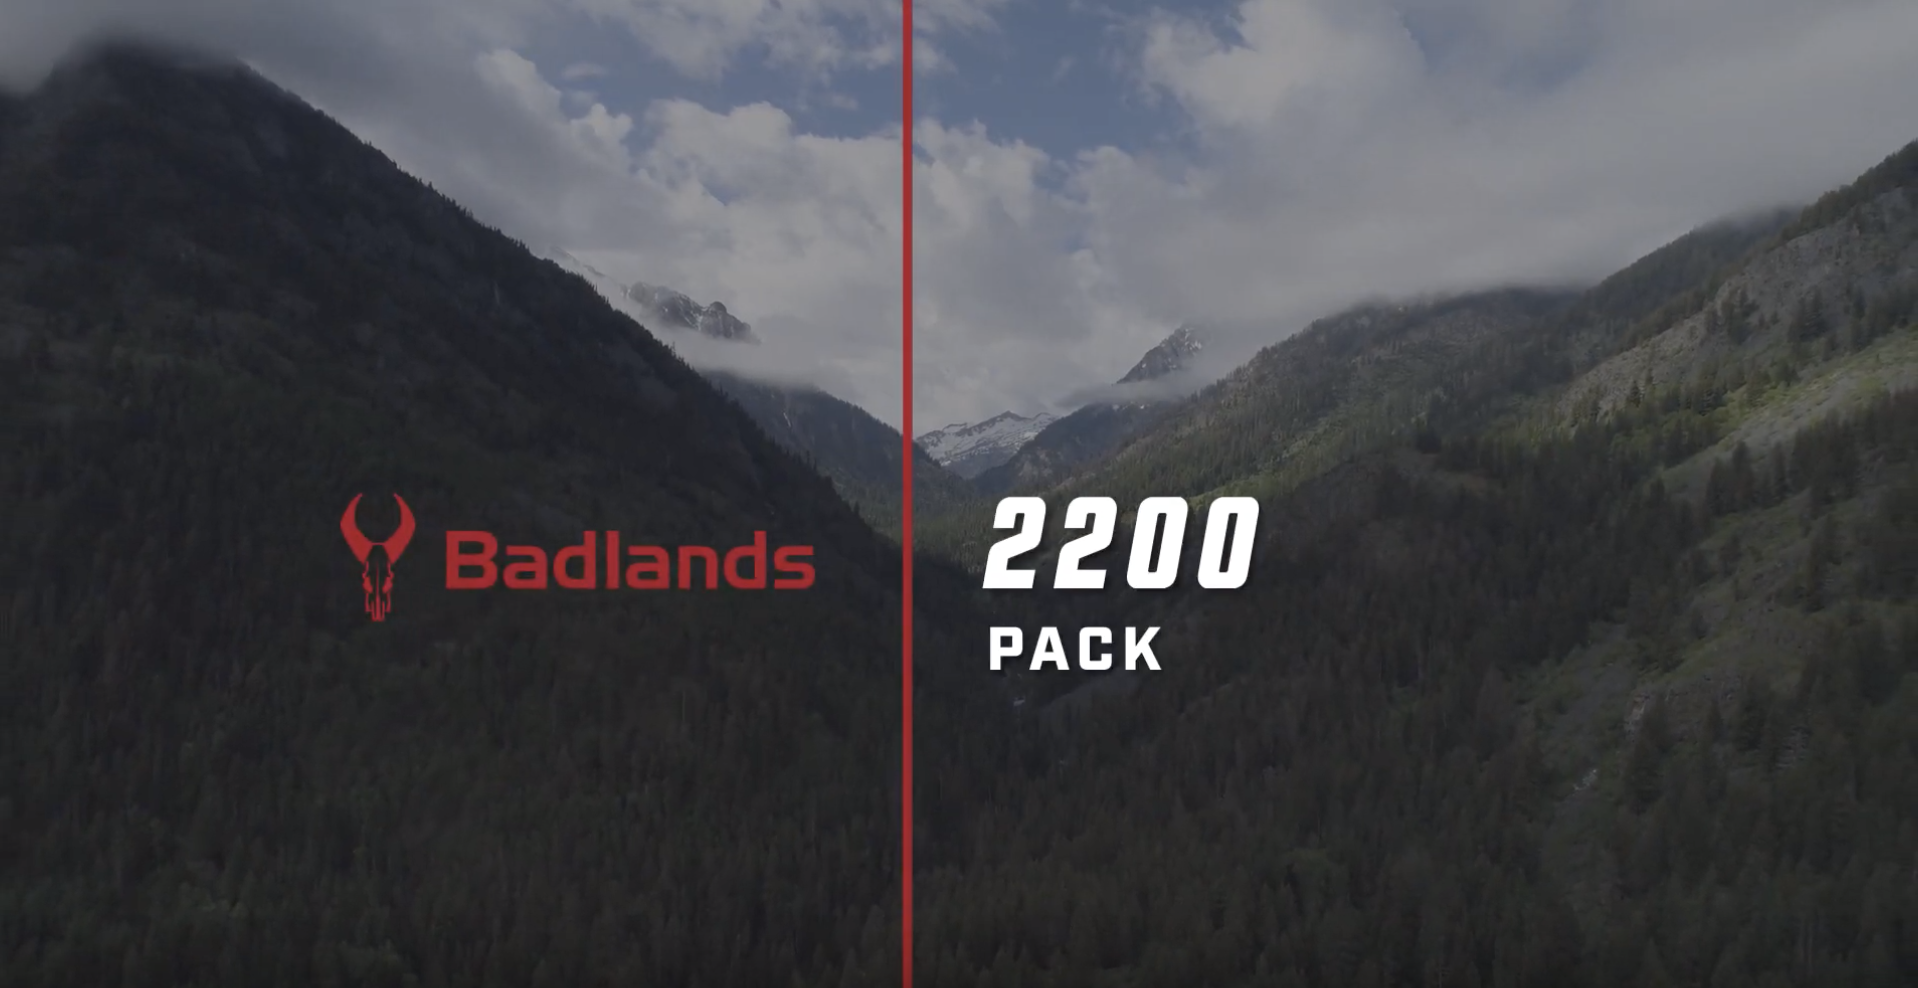 Learn more about the 2200 Pack